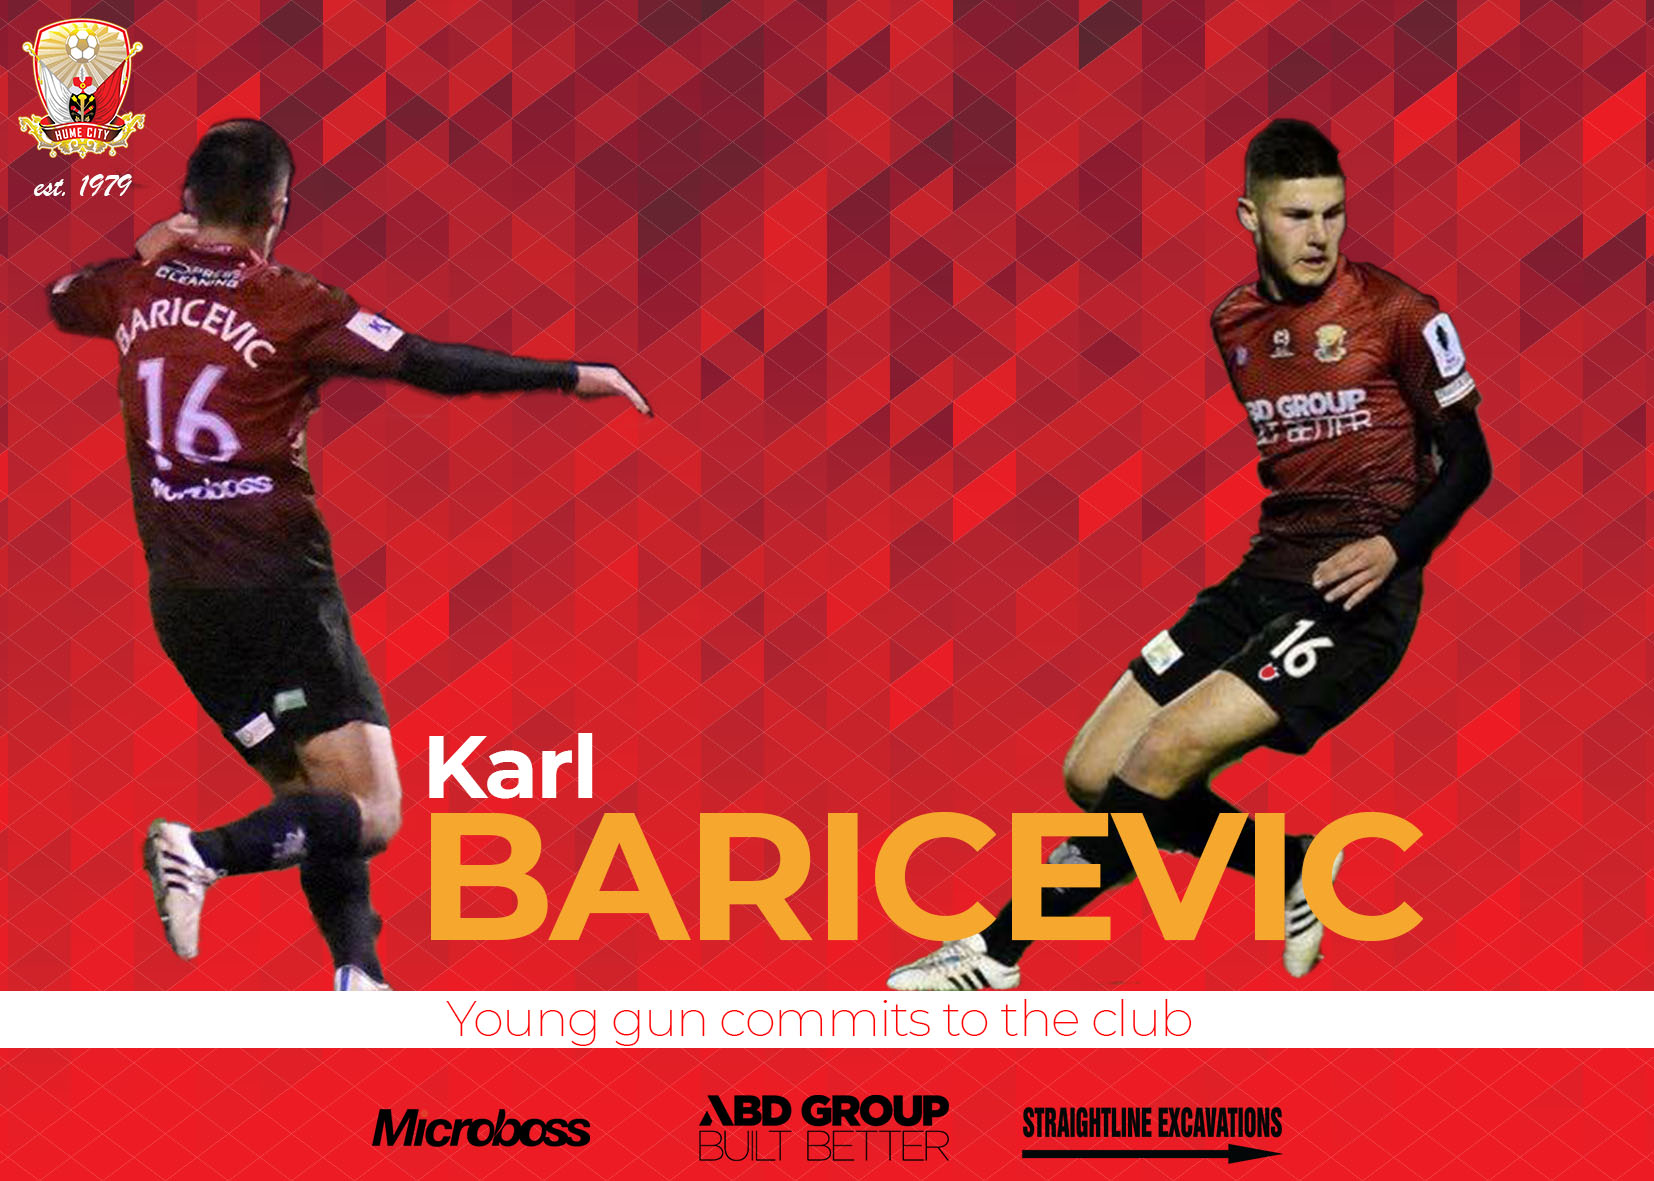 Karl Baricevic commits for two more seasons.